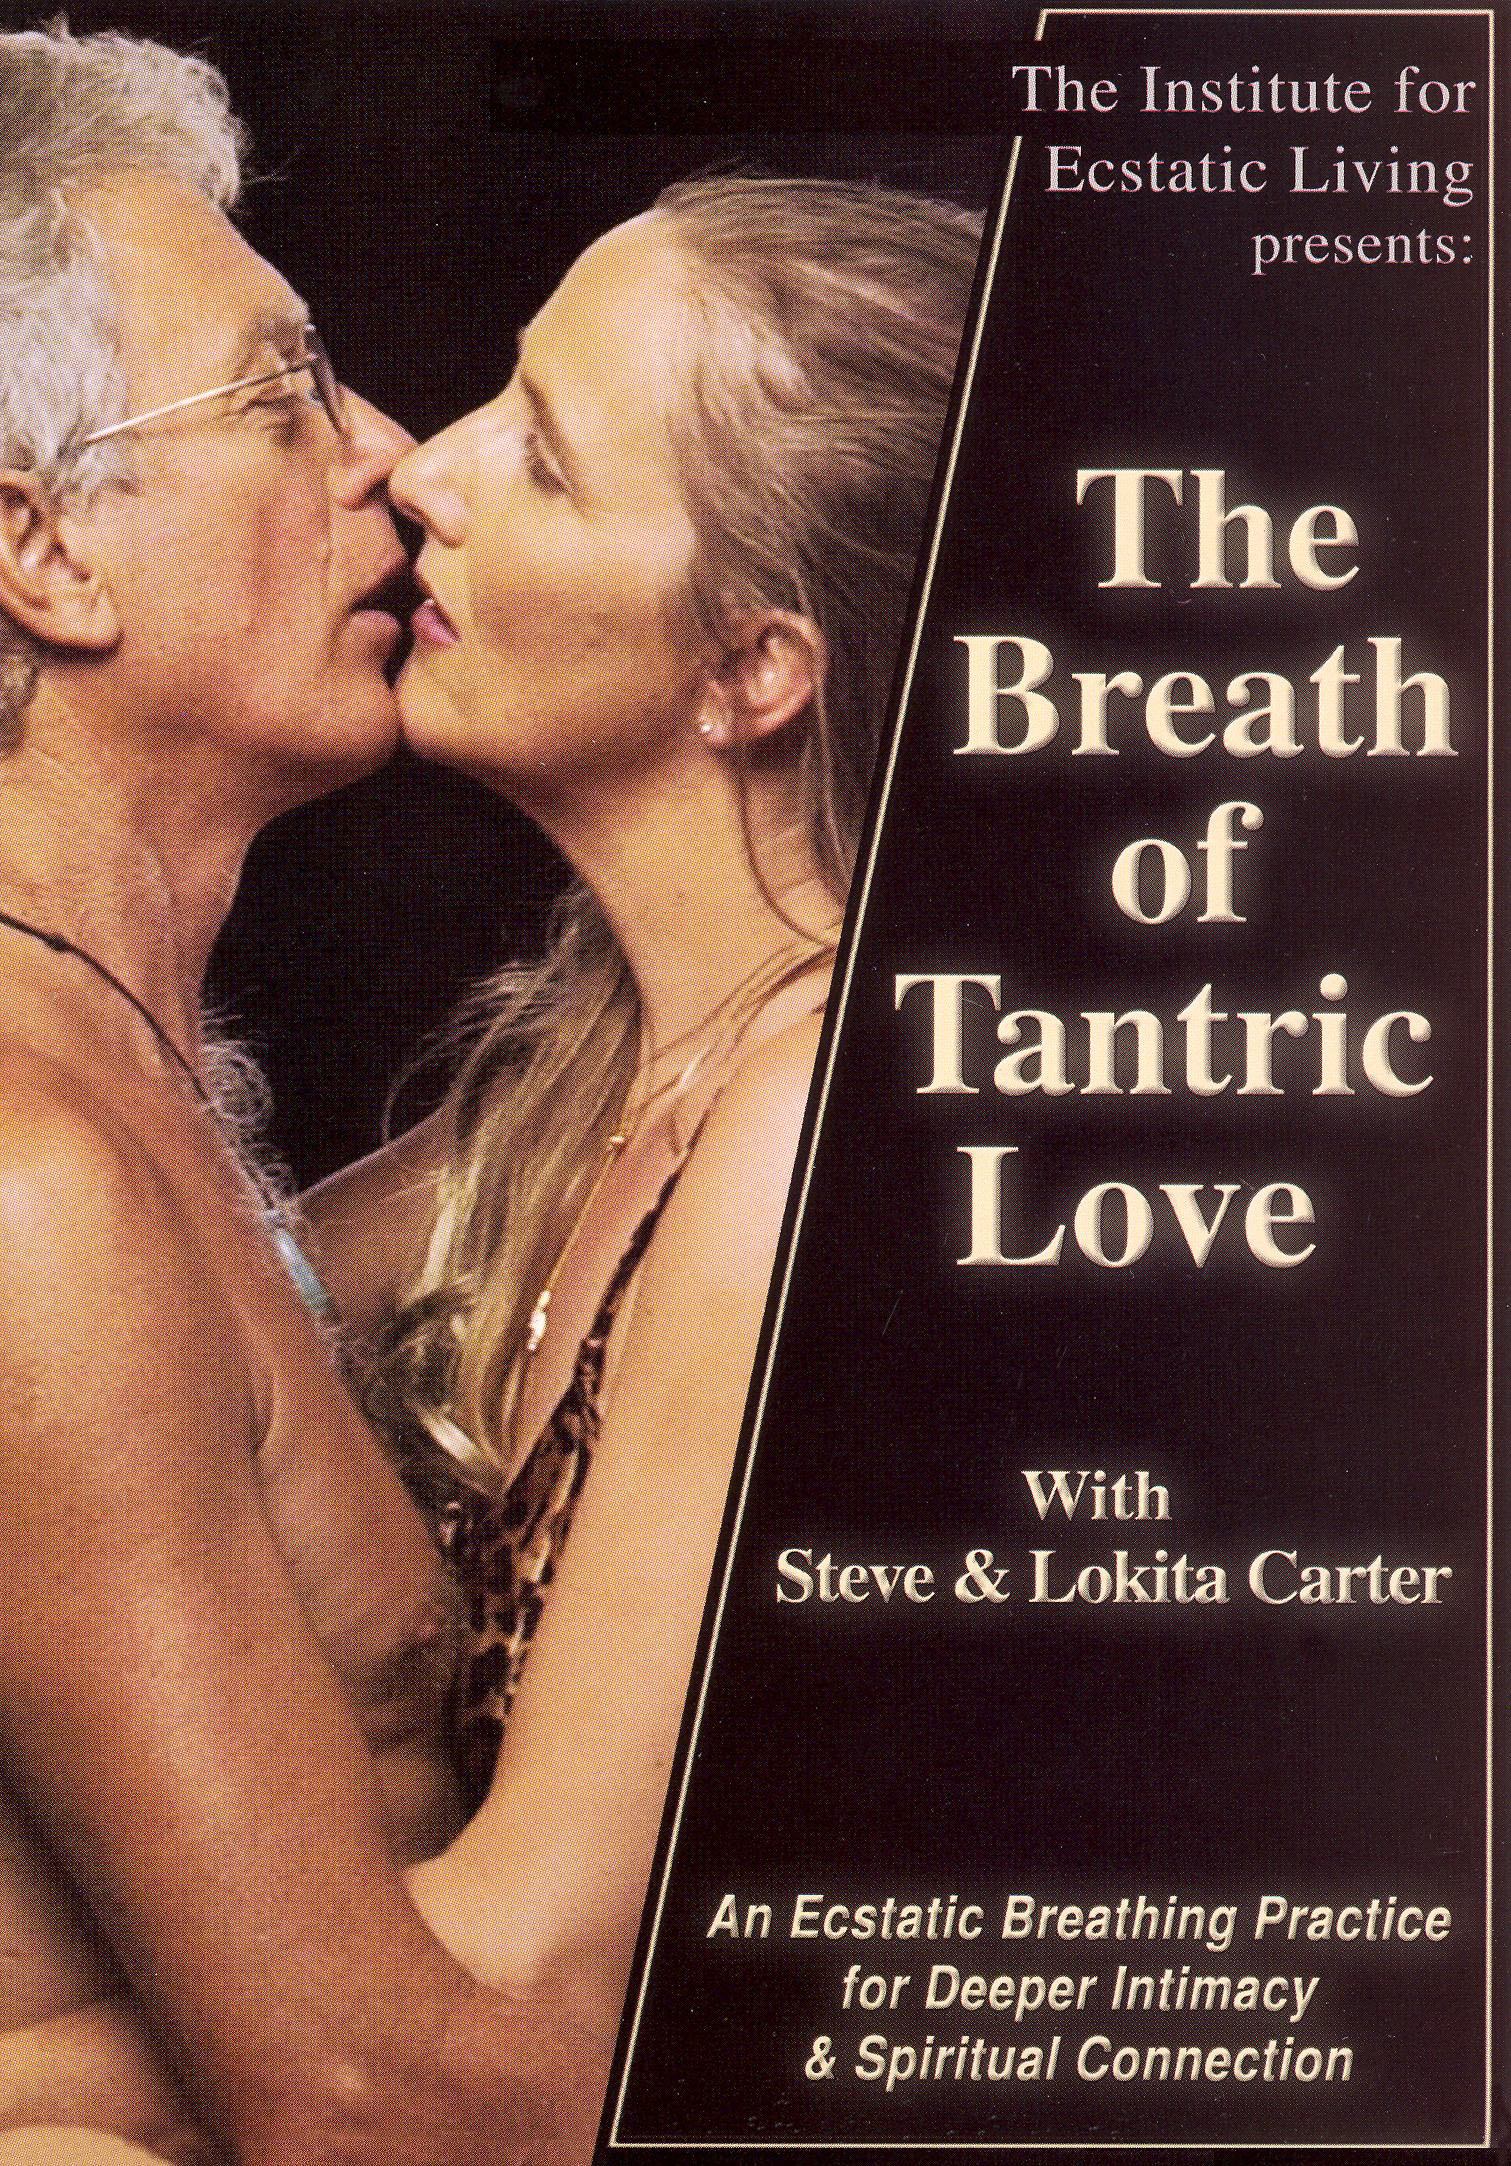 The Breath of Tantric Love